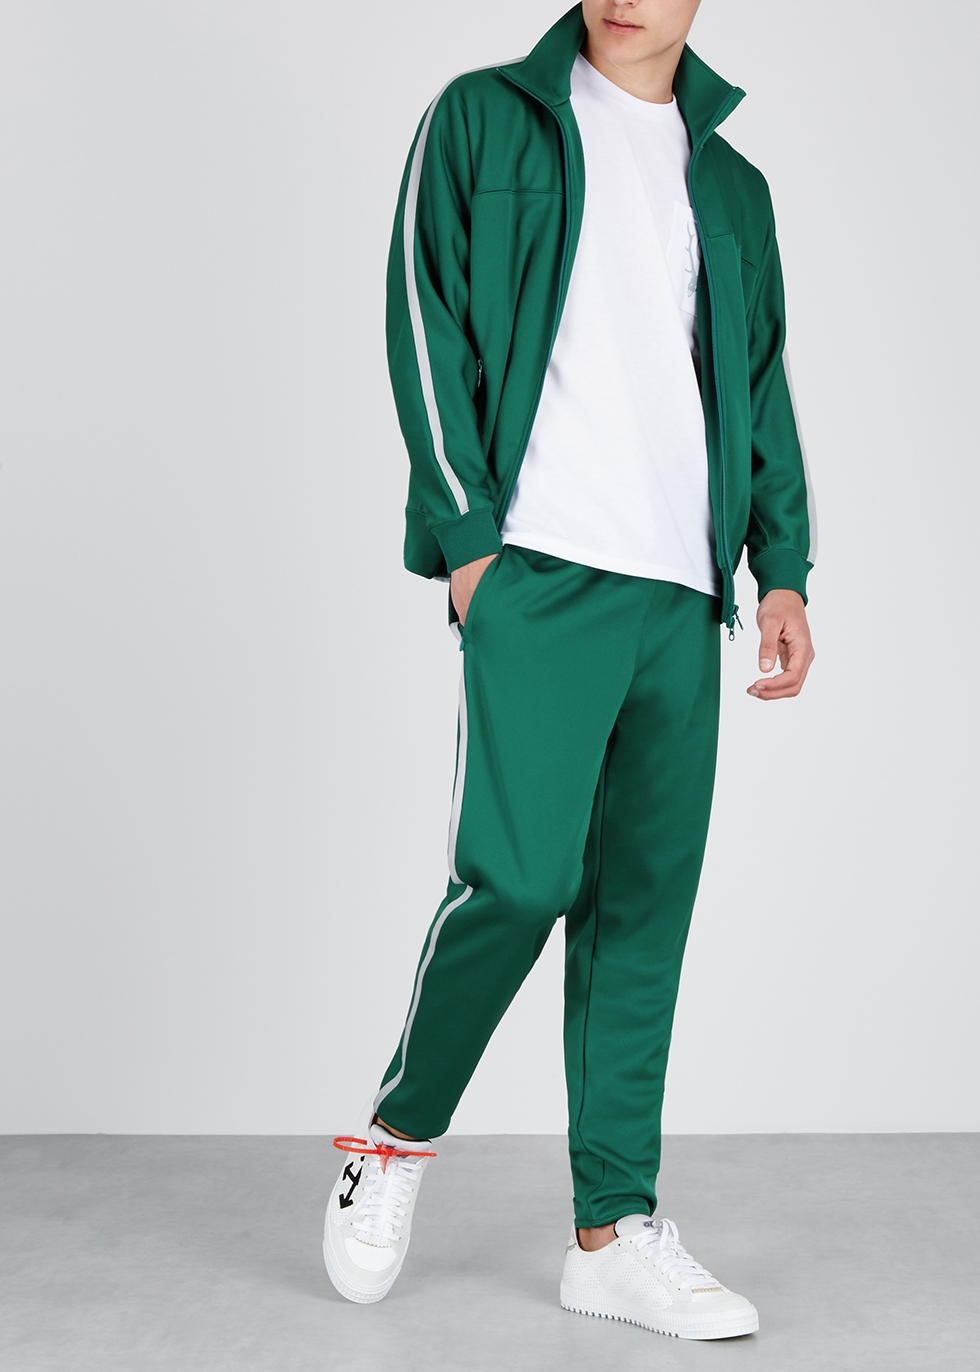 Trainer green jersey sweatshirt - South2 West8